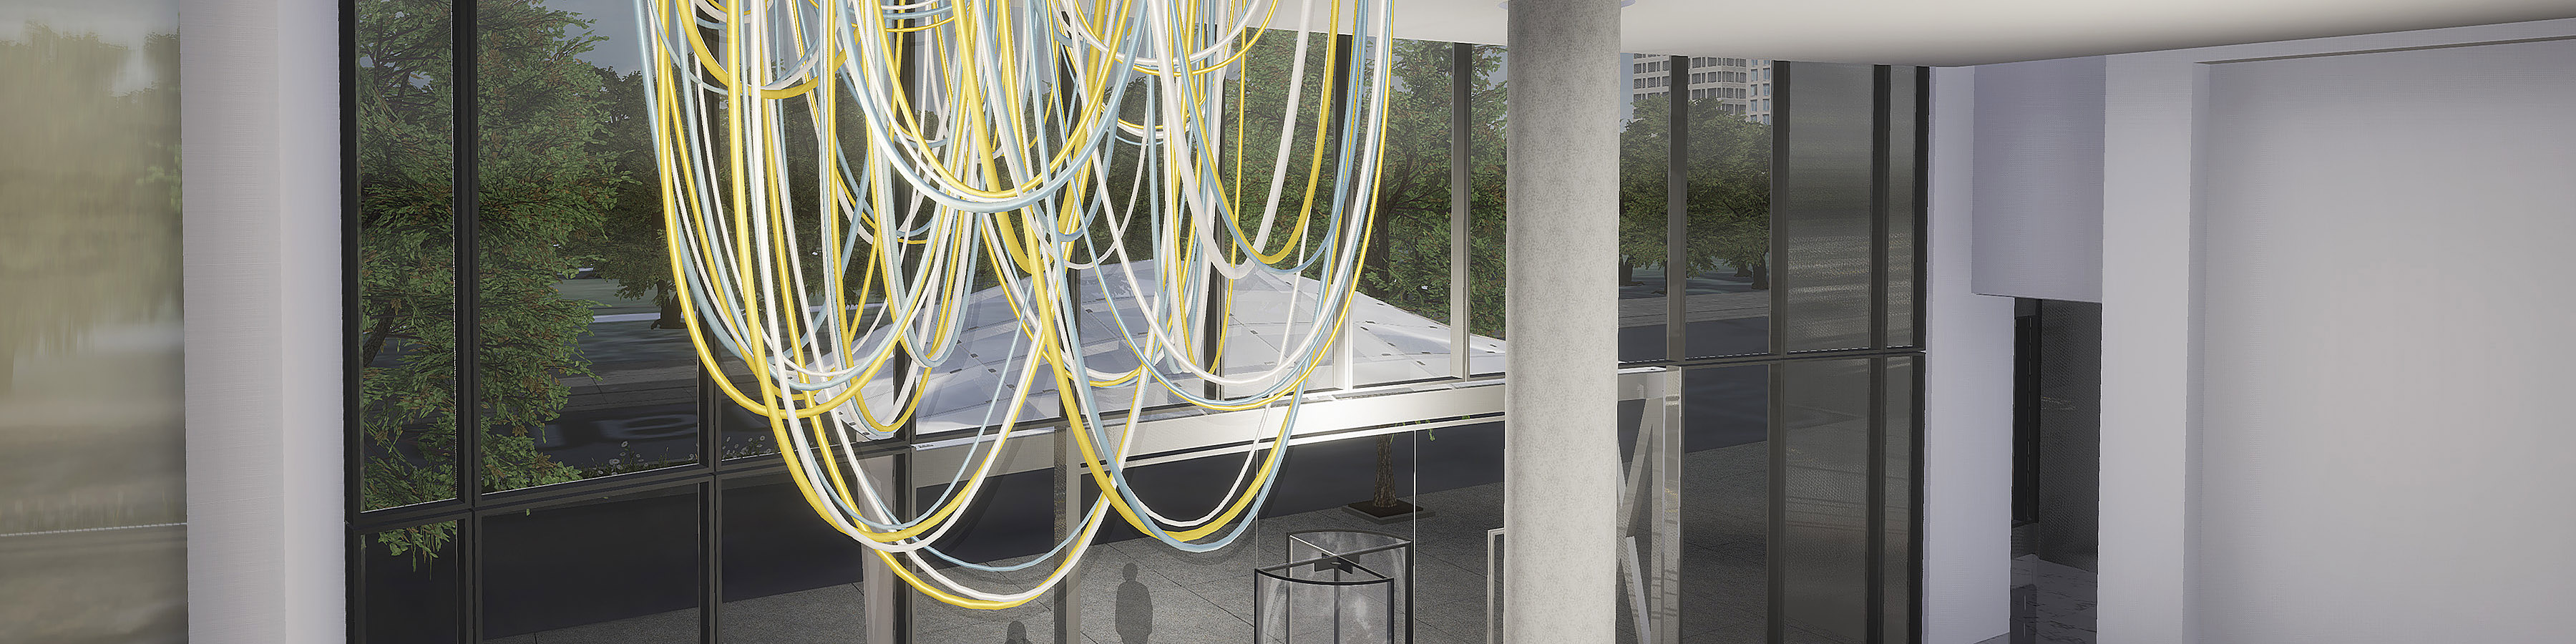 Grimanesa Amoros LUCENT 3D Render for the 1000m building in chicago